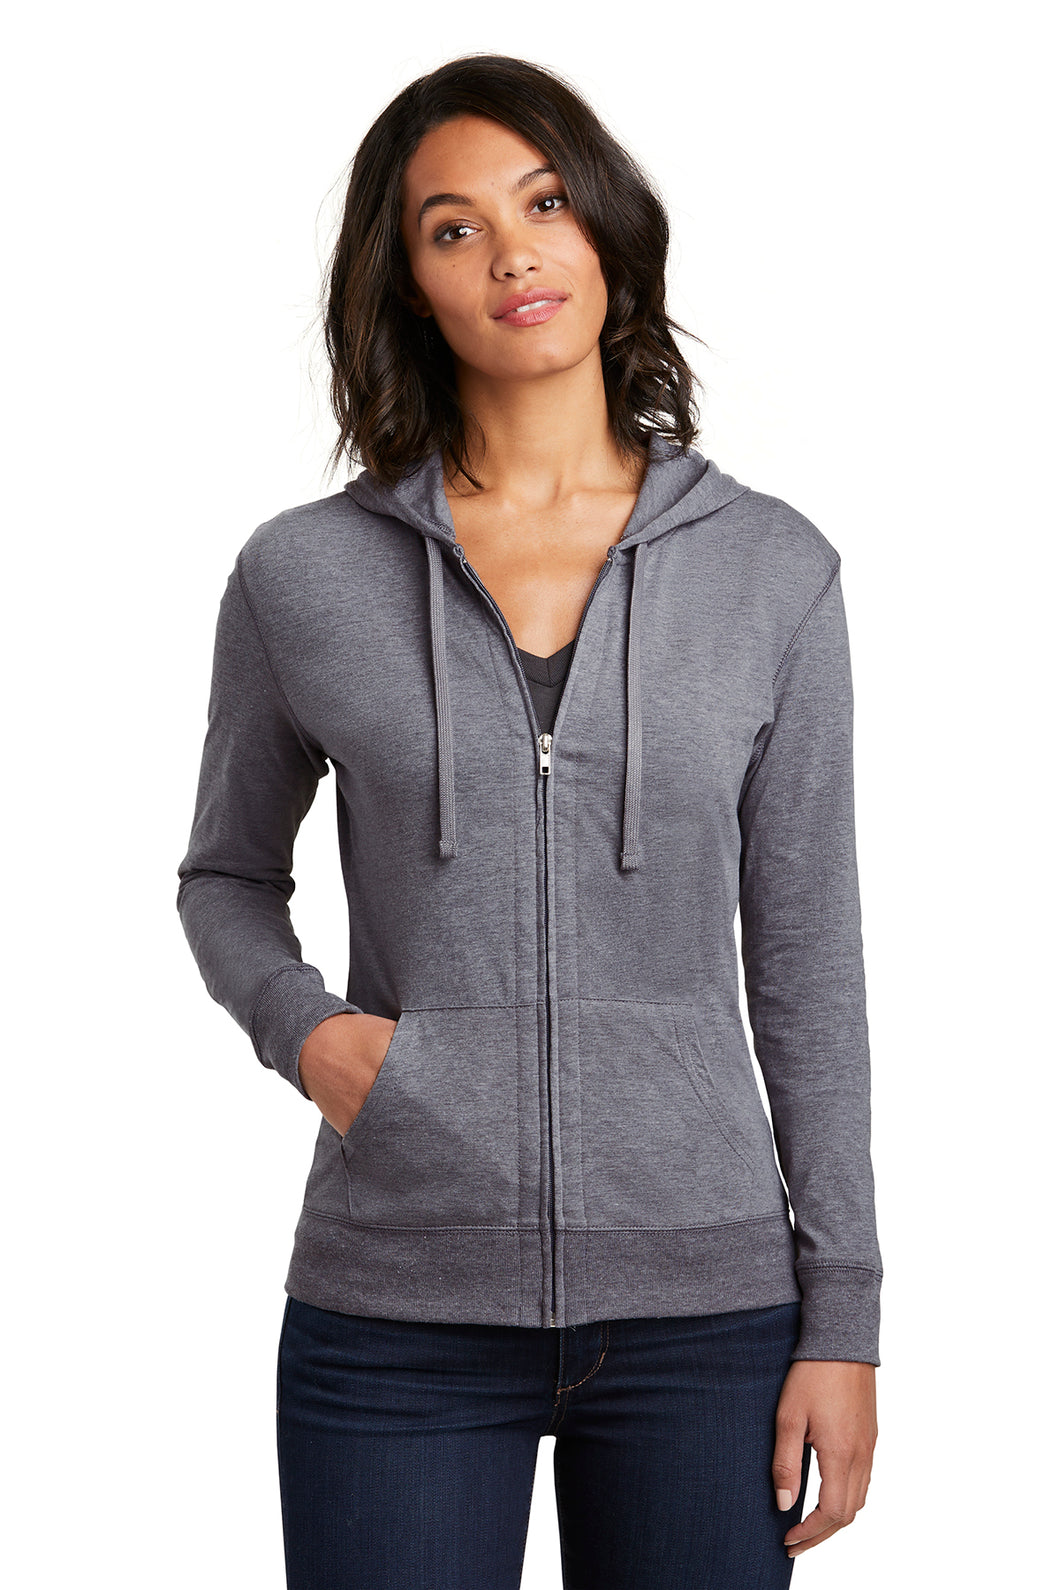 Allied Zip Hoodie Women's